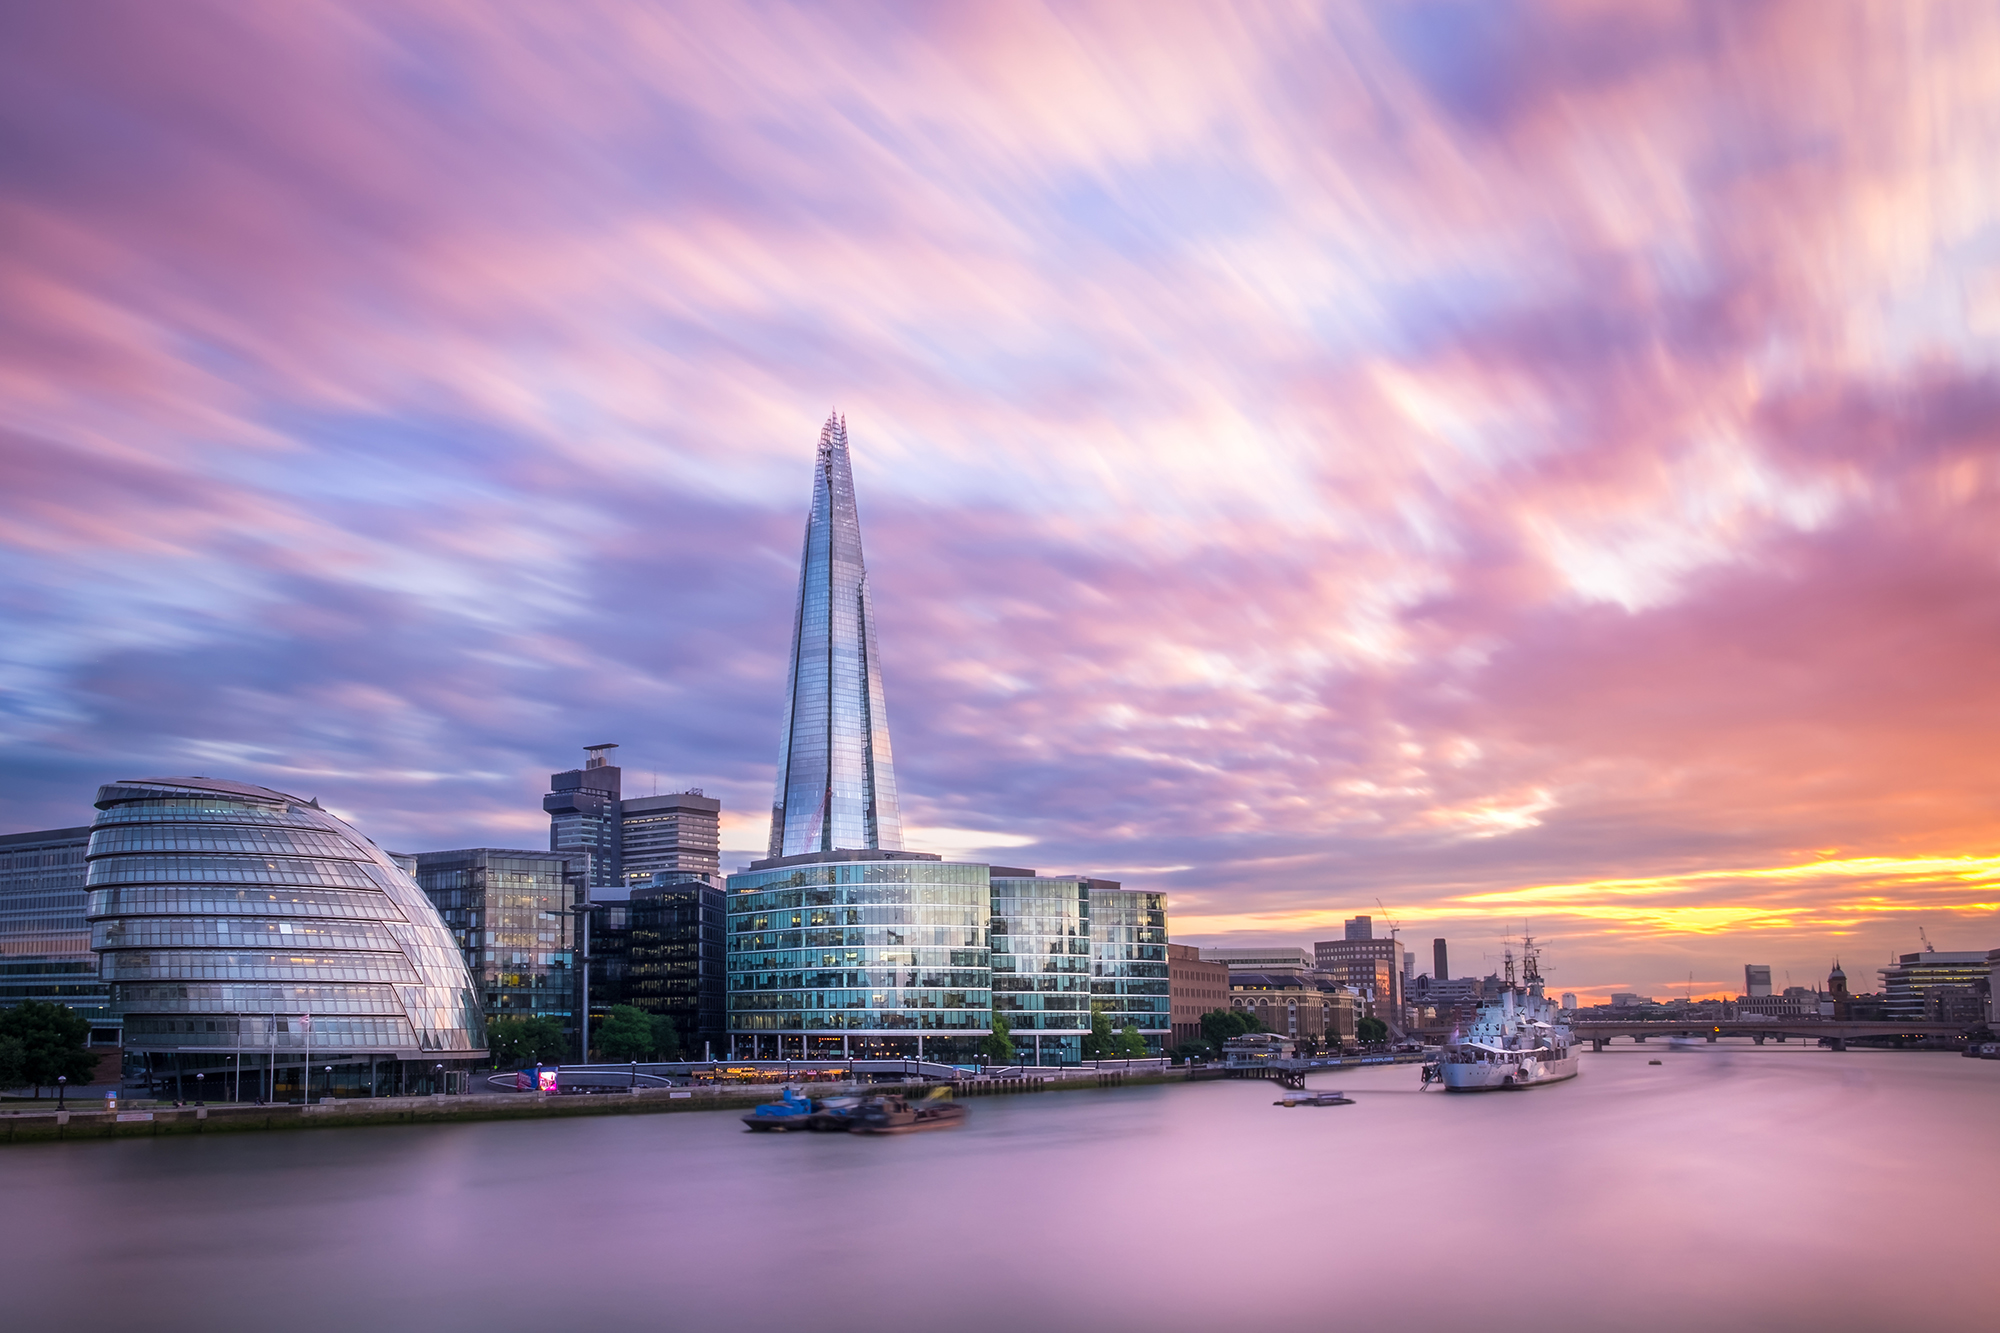 A long exposure photo of the Shard at Sunset taken by Trevor Sherwin